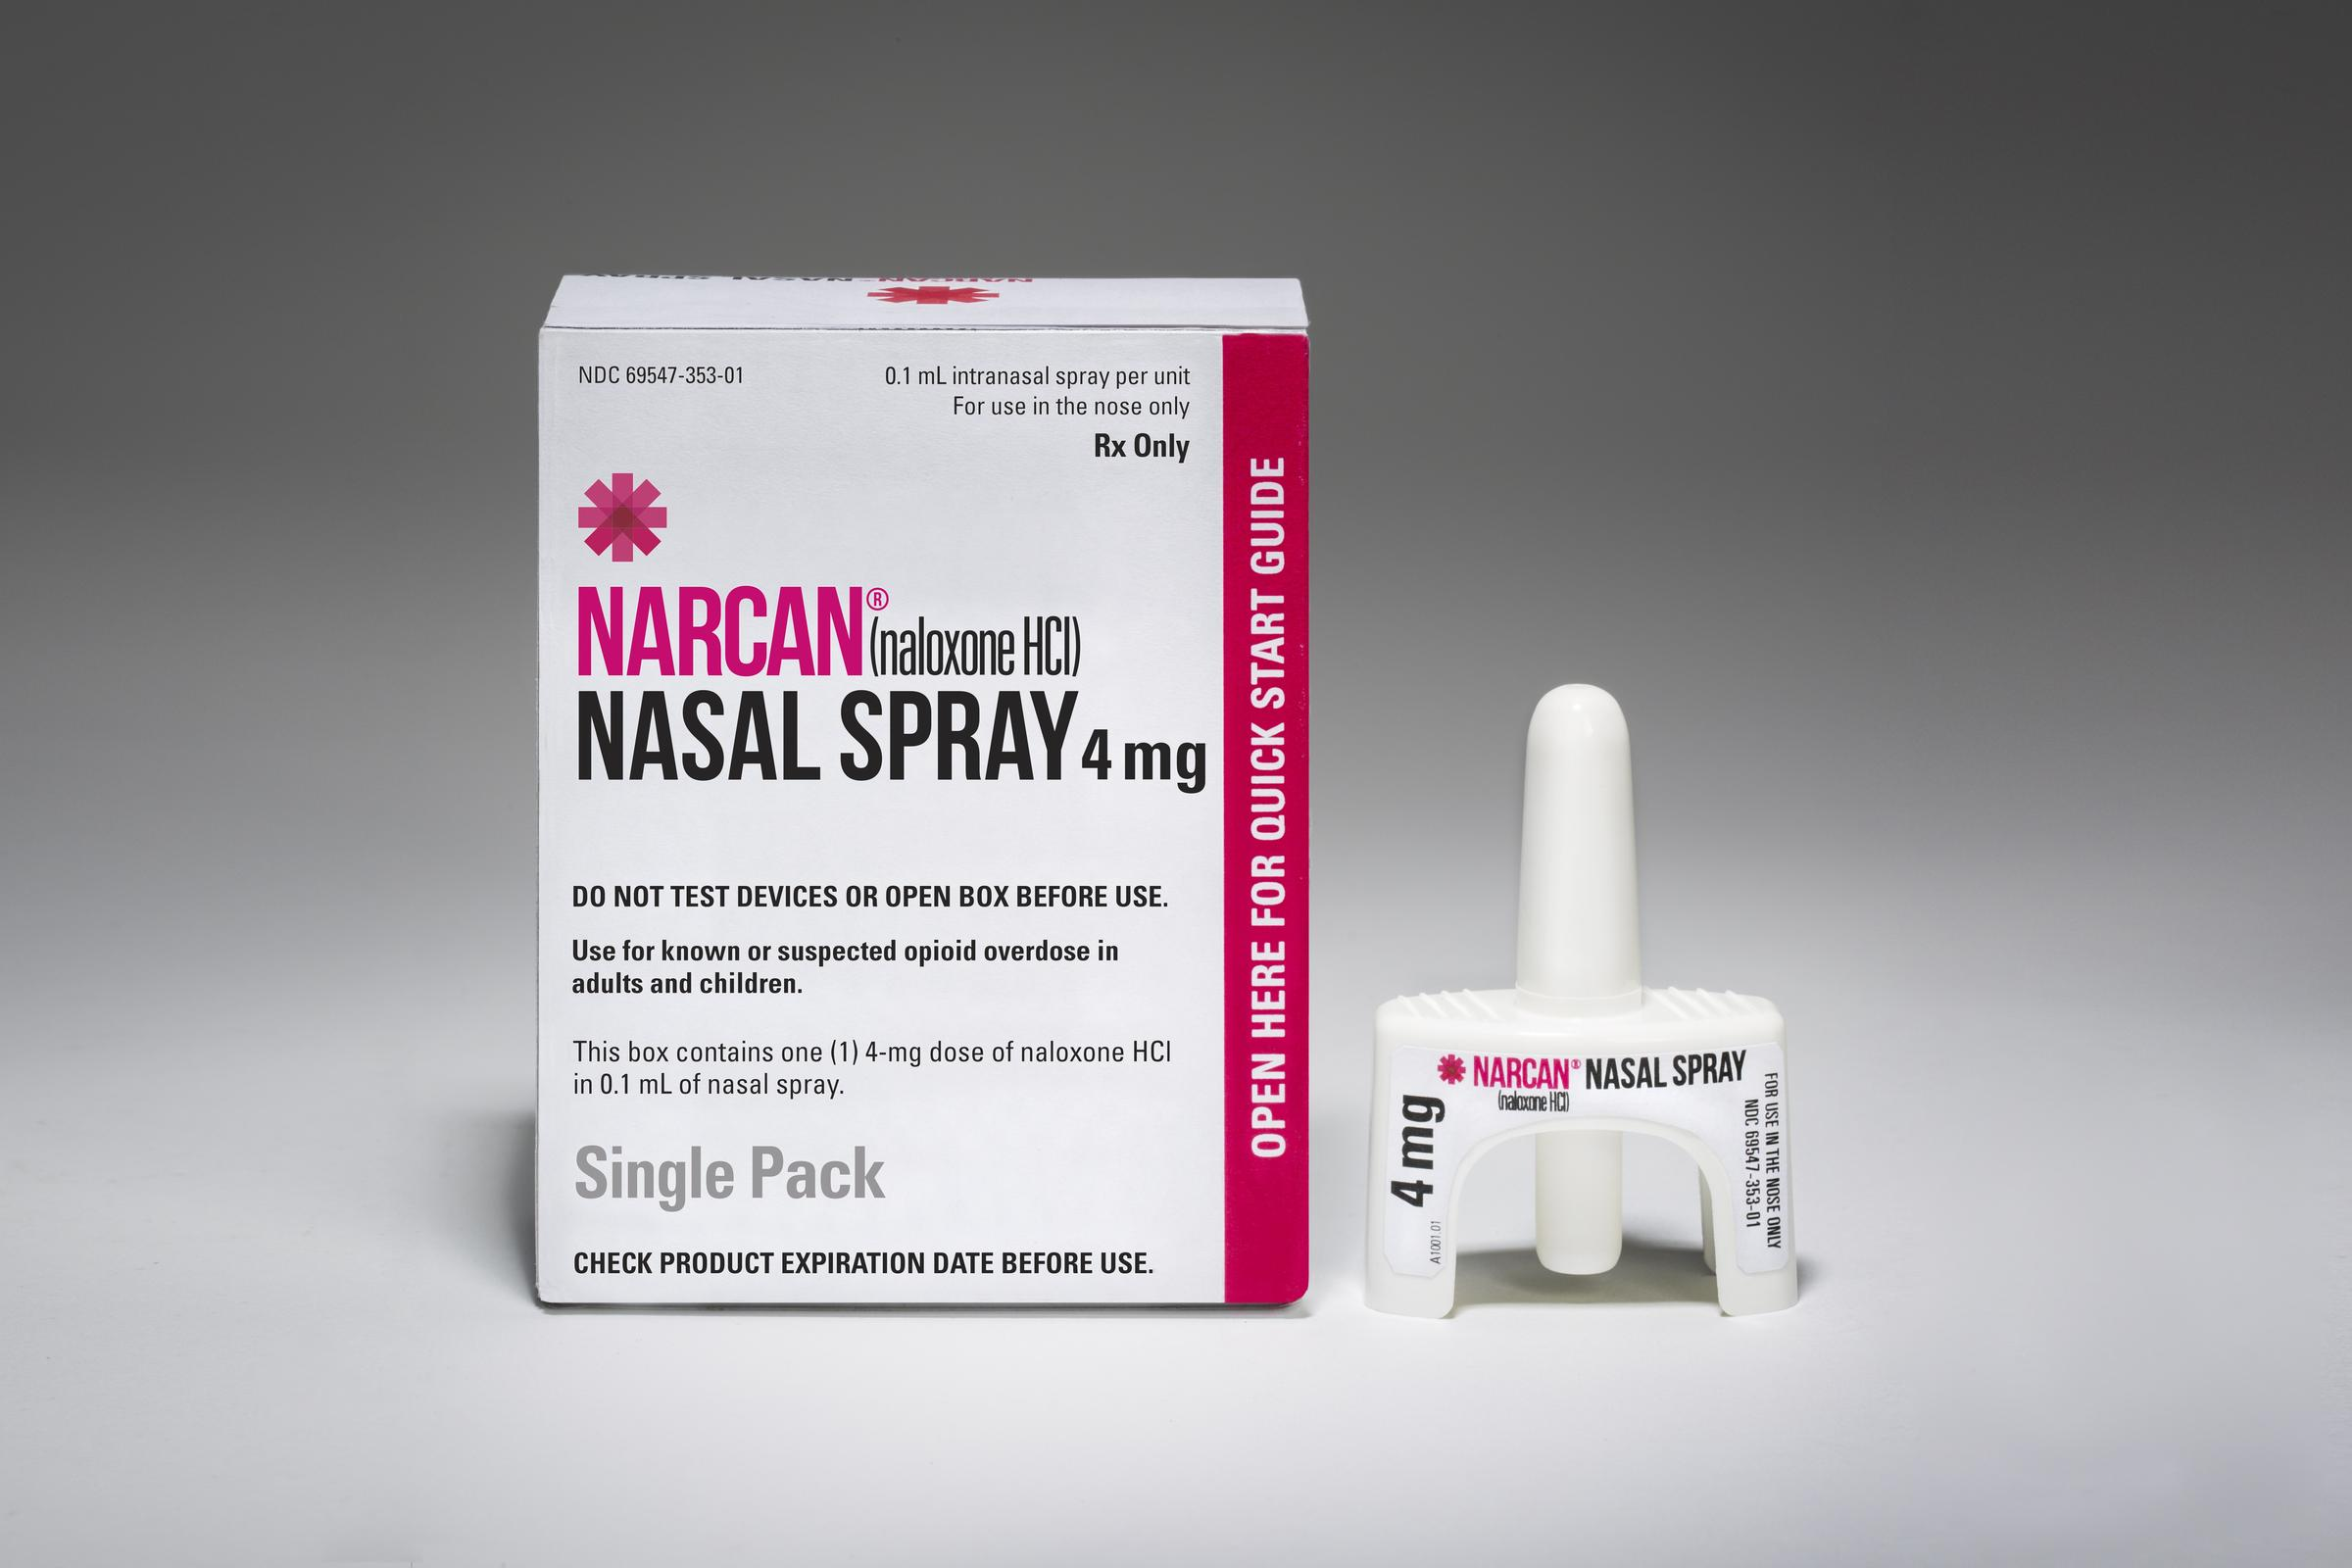 Naloxone Can Save - Using nasal sprays and injectible formulations, naloxone can completely reverse an overdose.